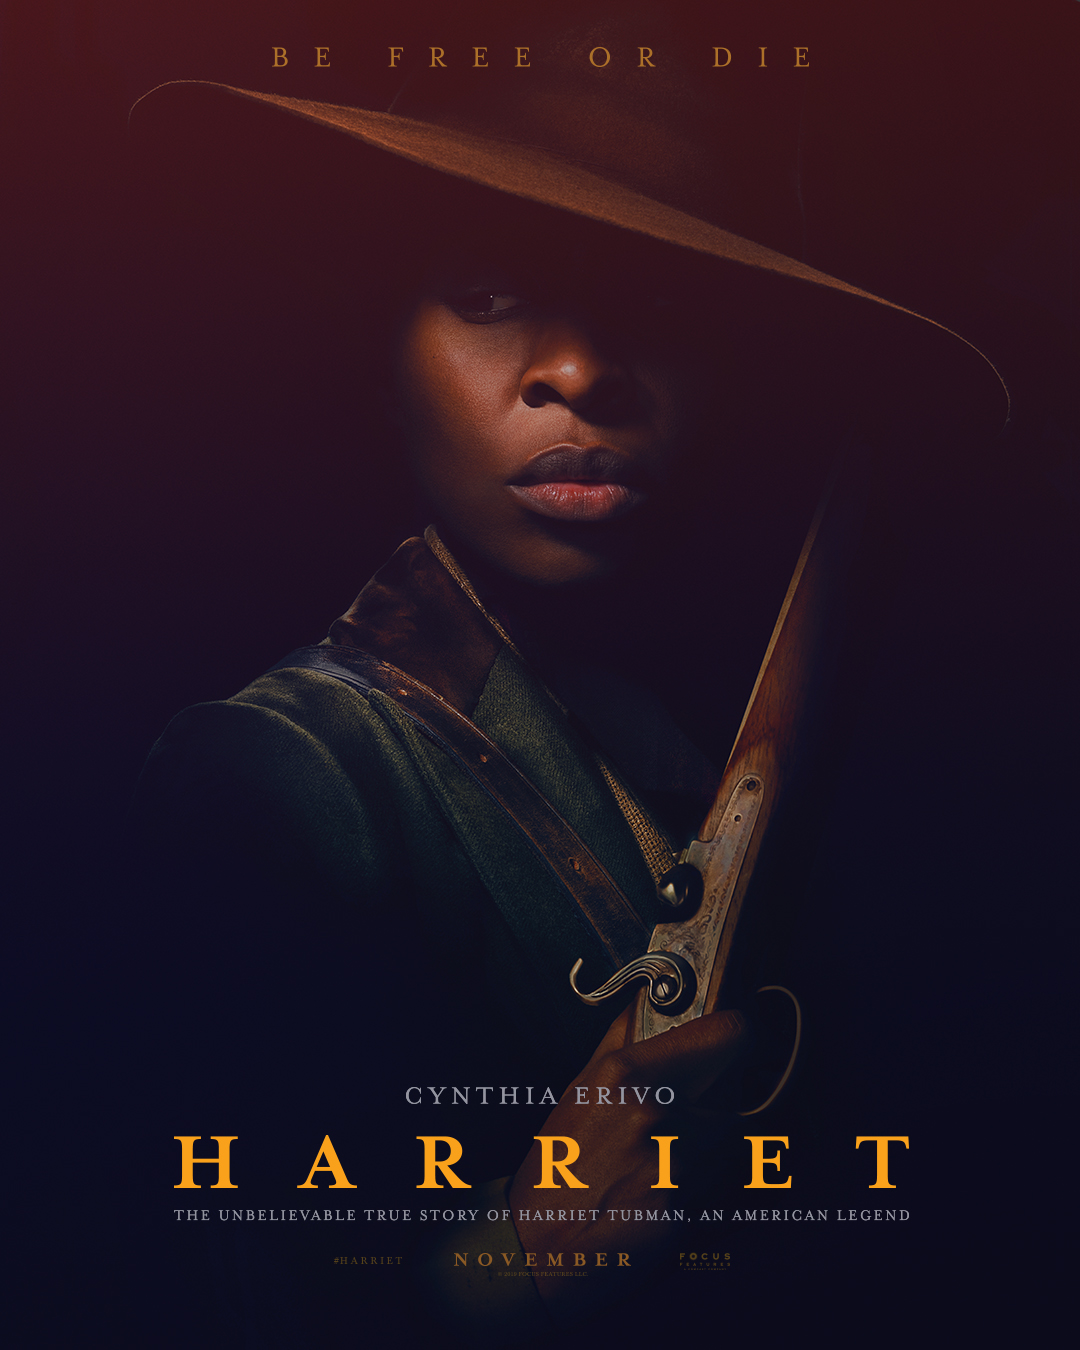 Cynthia Erivo stars as Harriet Tubman in first trailer for biopic